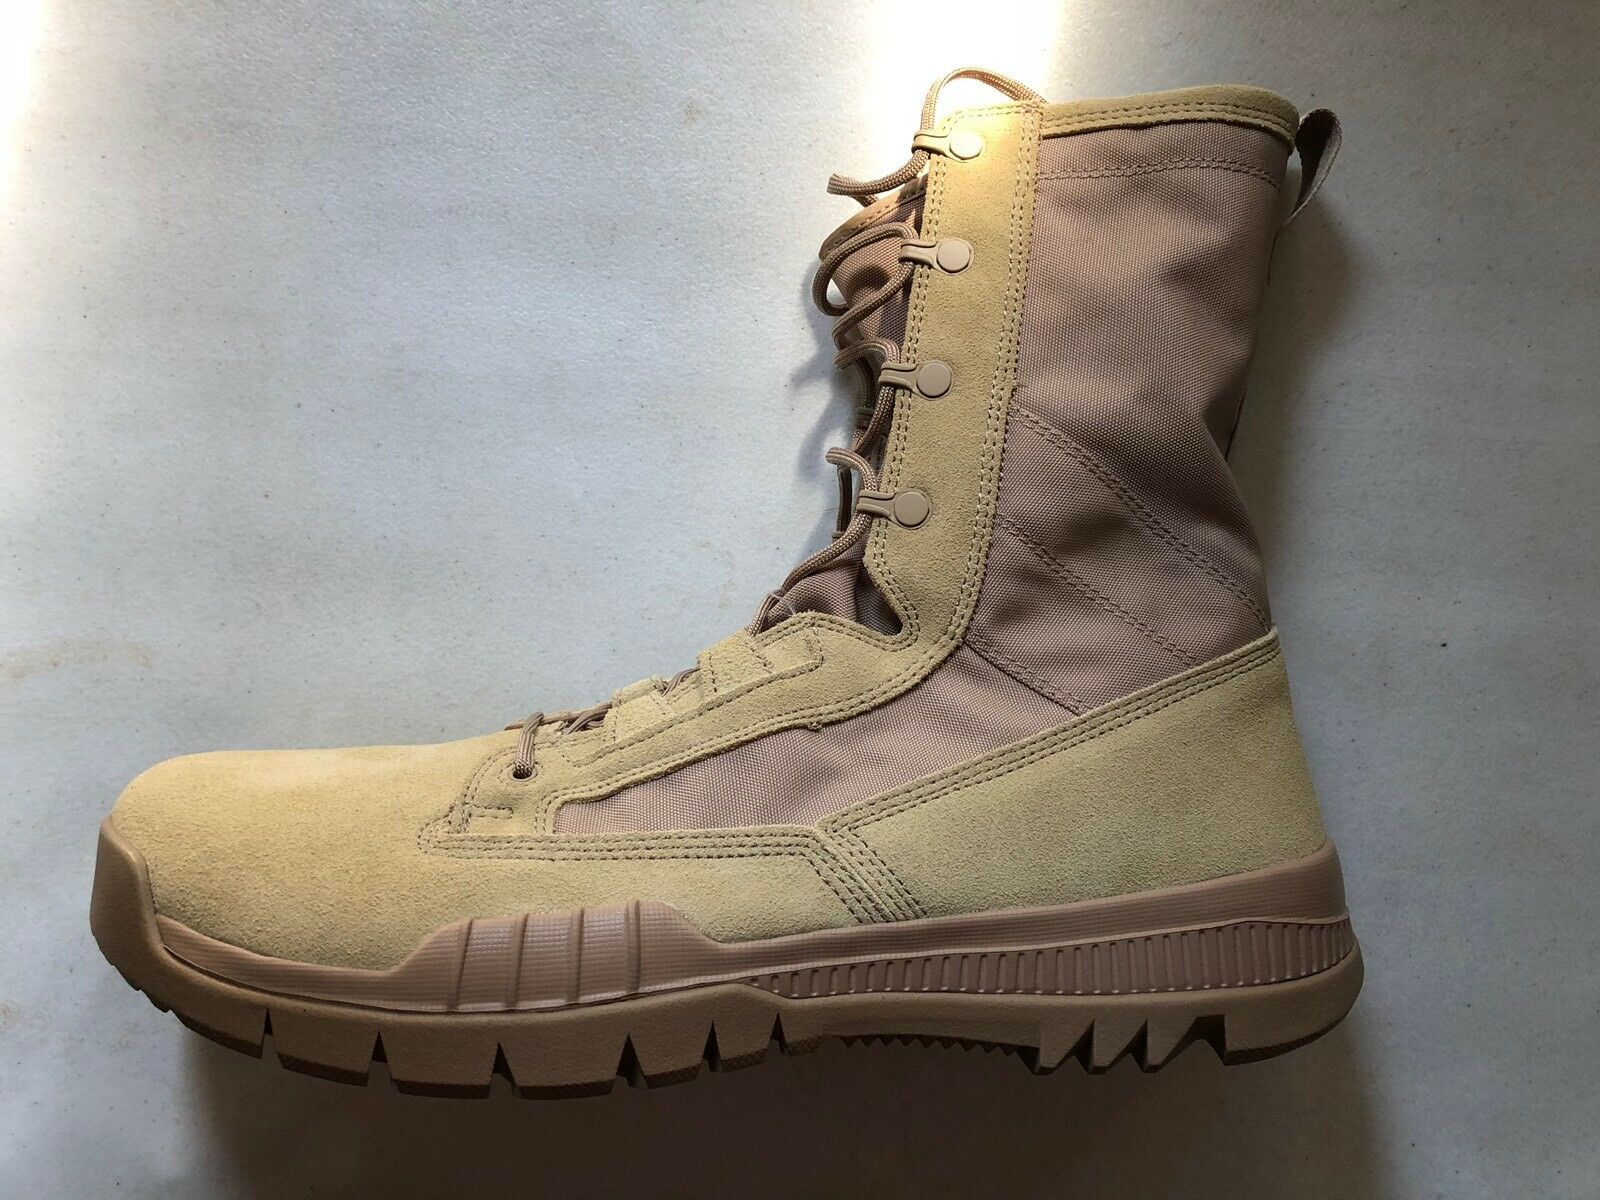 """New Nike SFB Special Field Boots 8"""" Leather Desert 688974-200 Sz 13"""